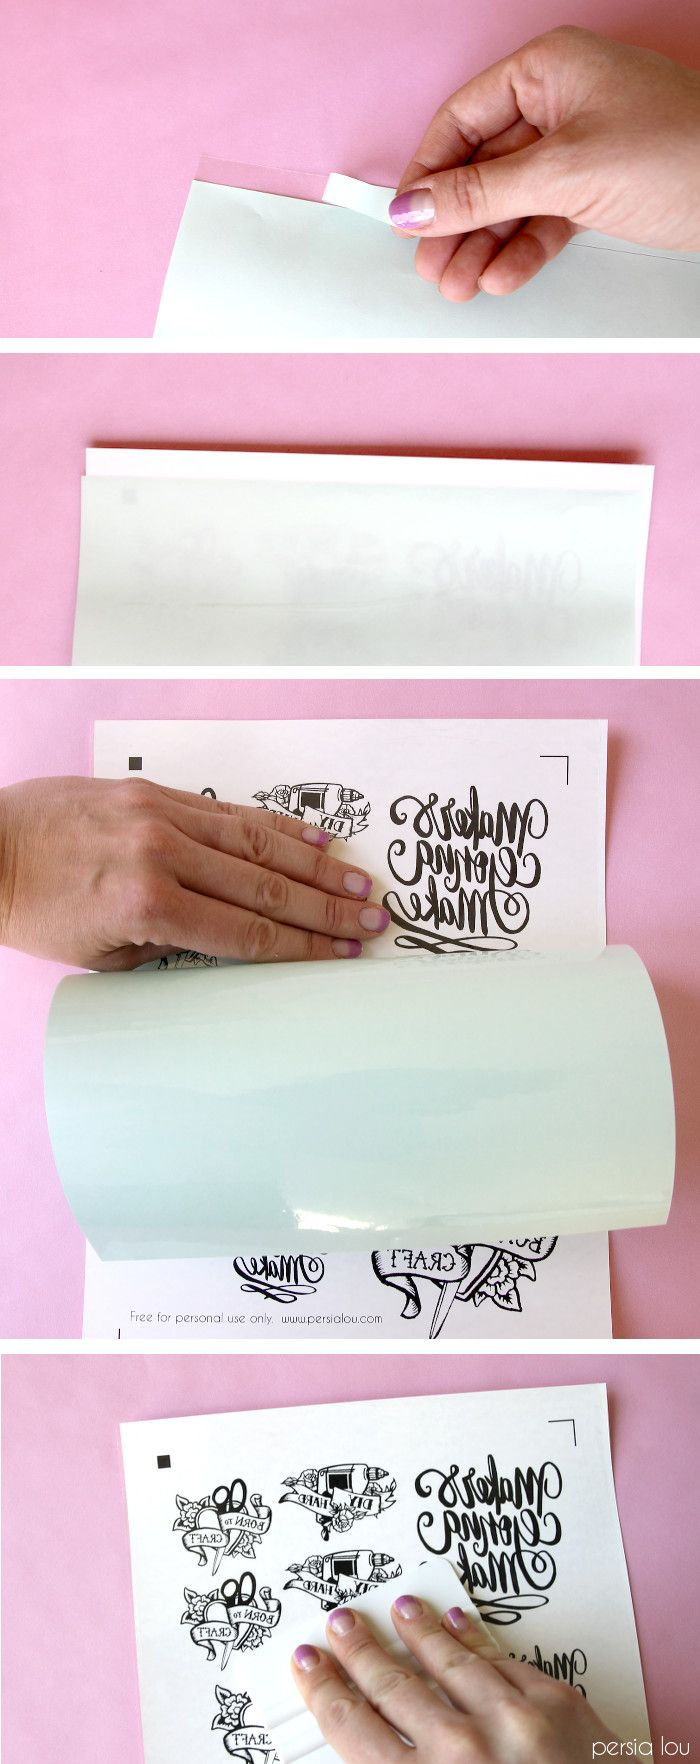 how to make your own temporary tattoos - with free download